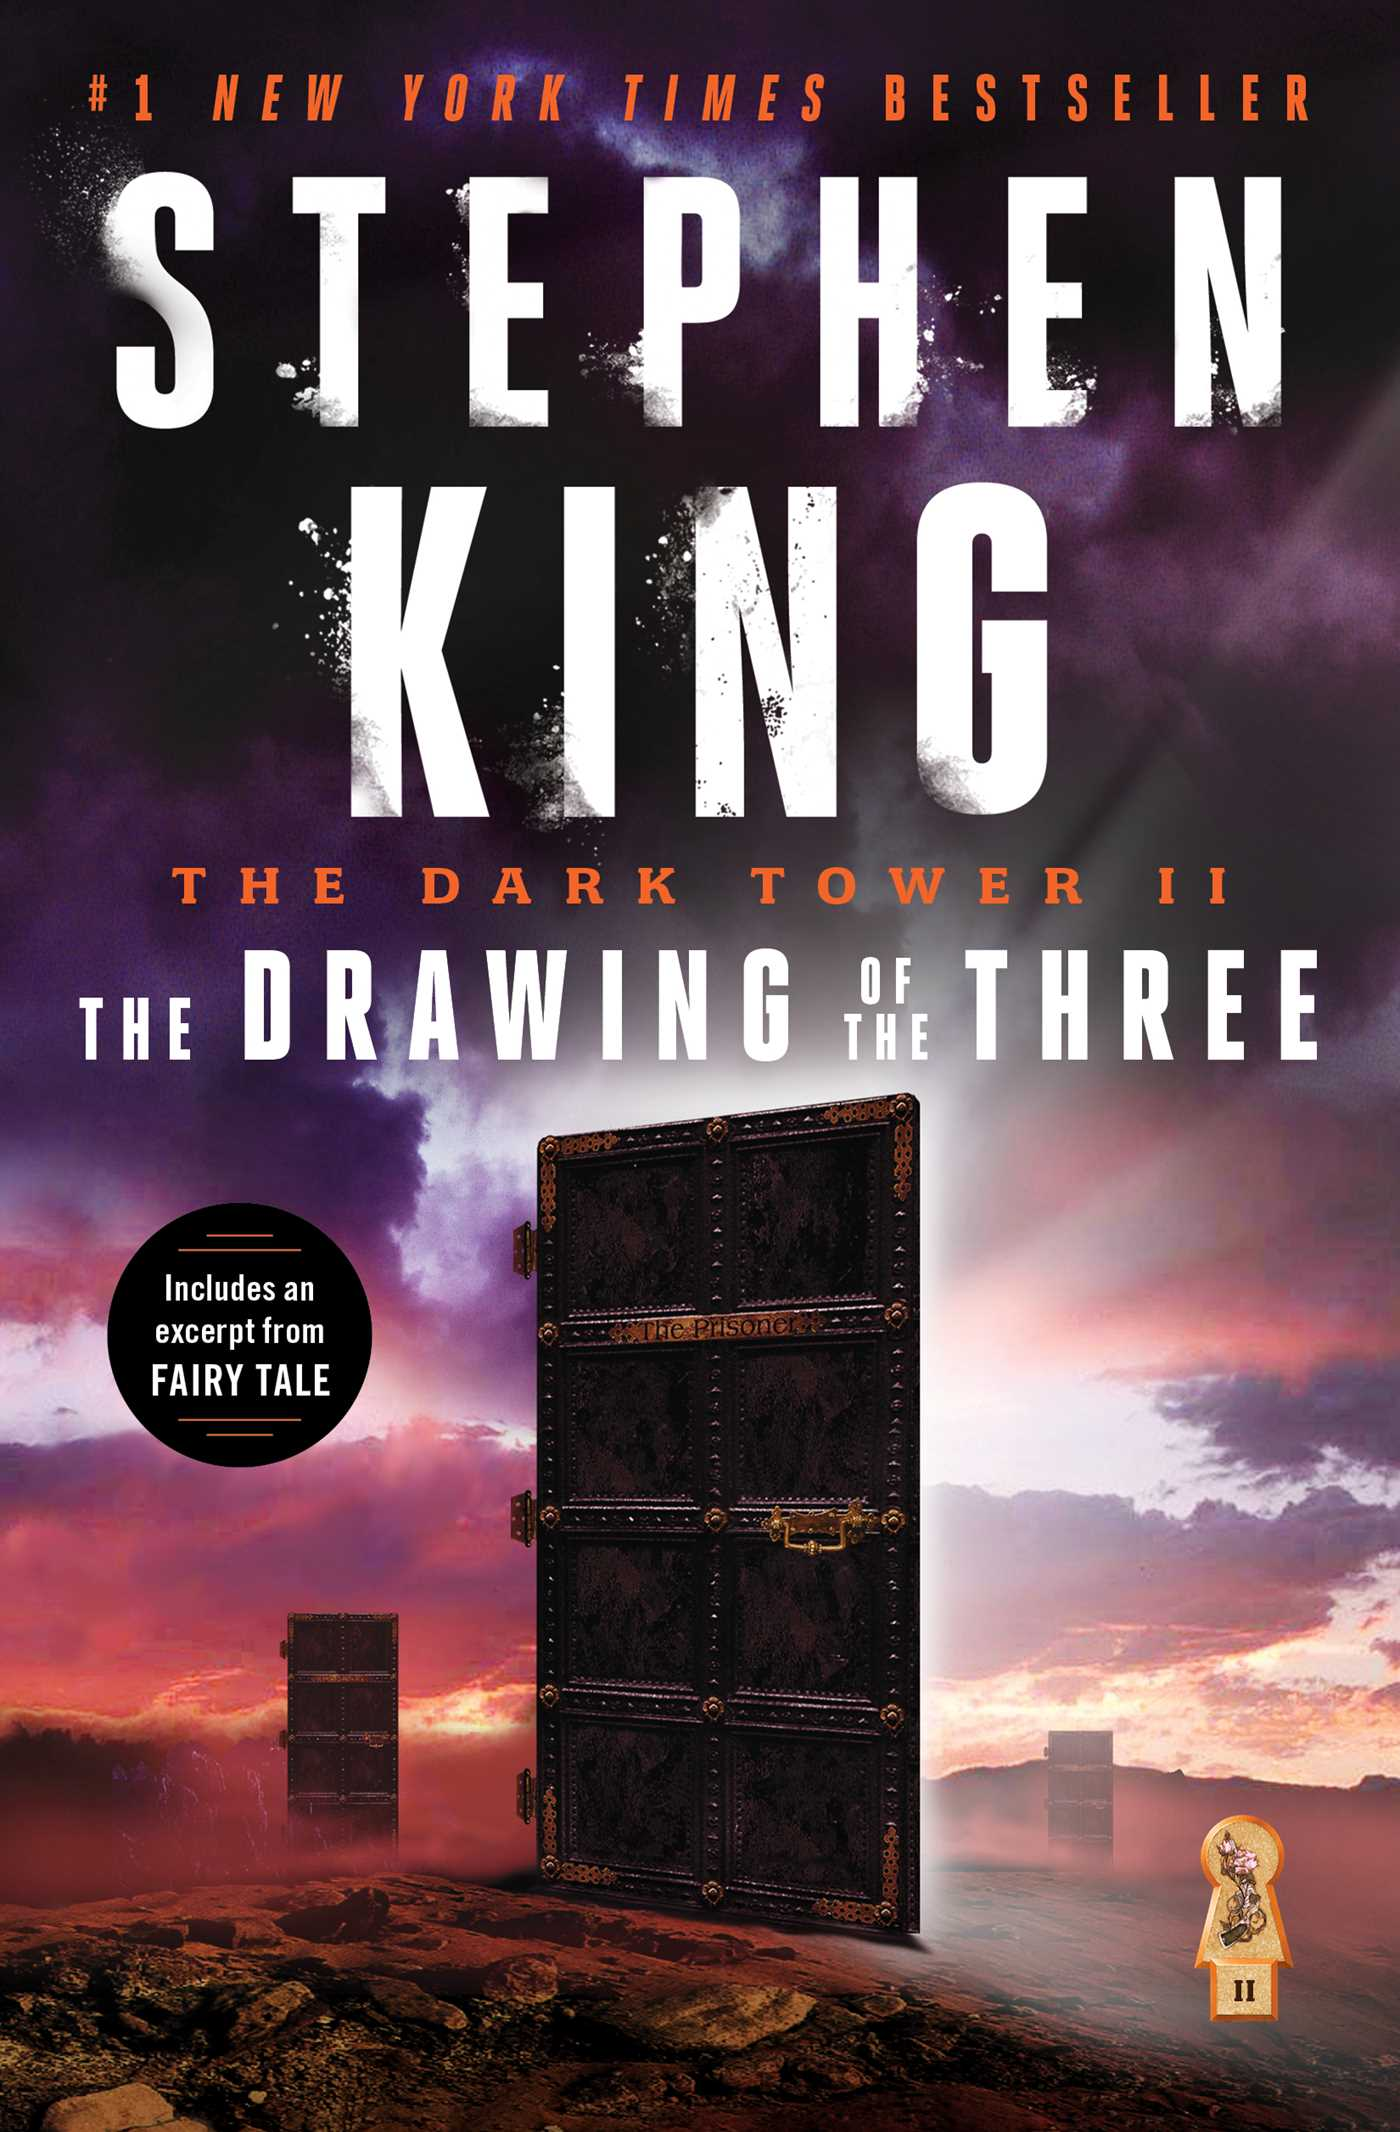 The dark tower ii 9781501141393 hr